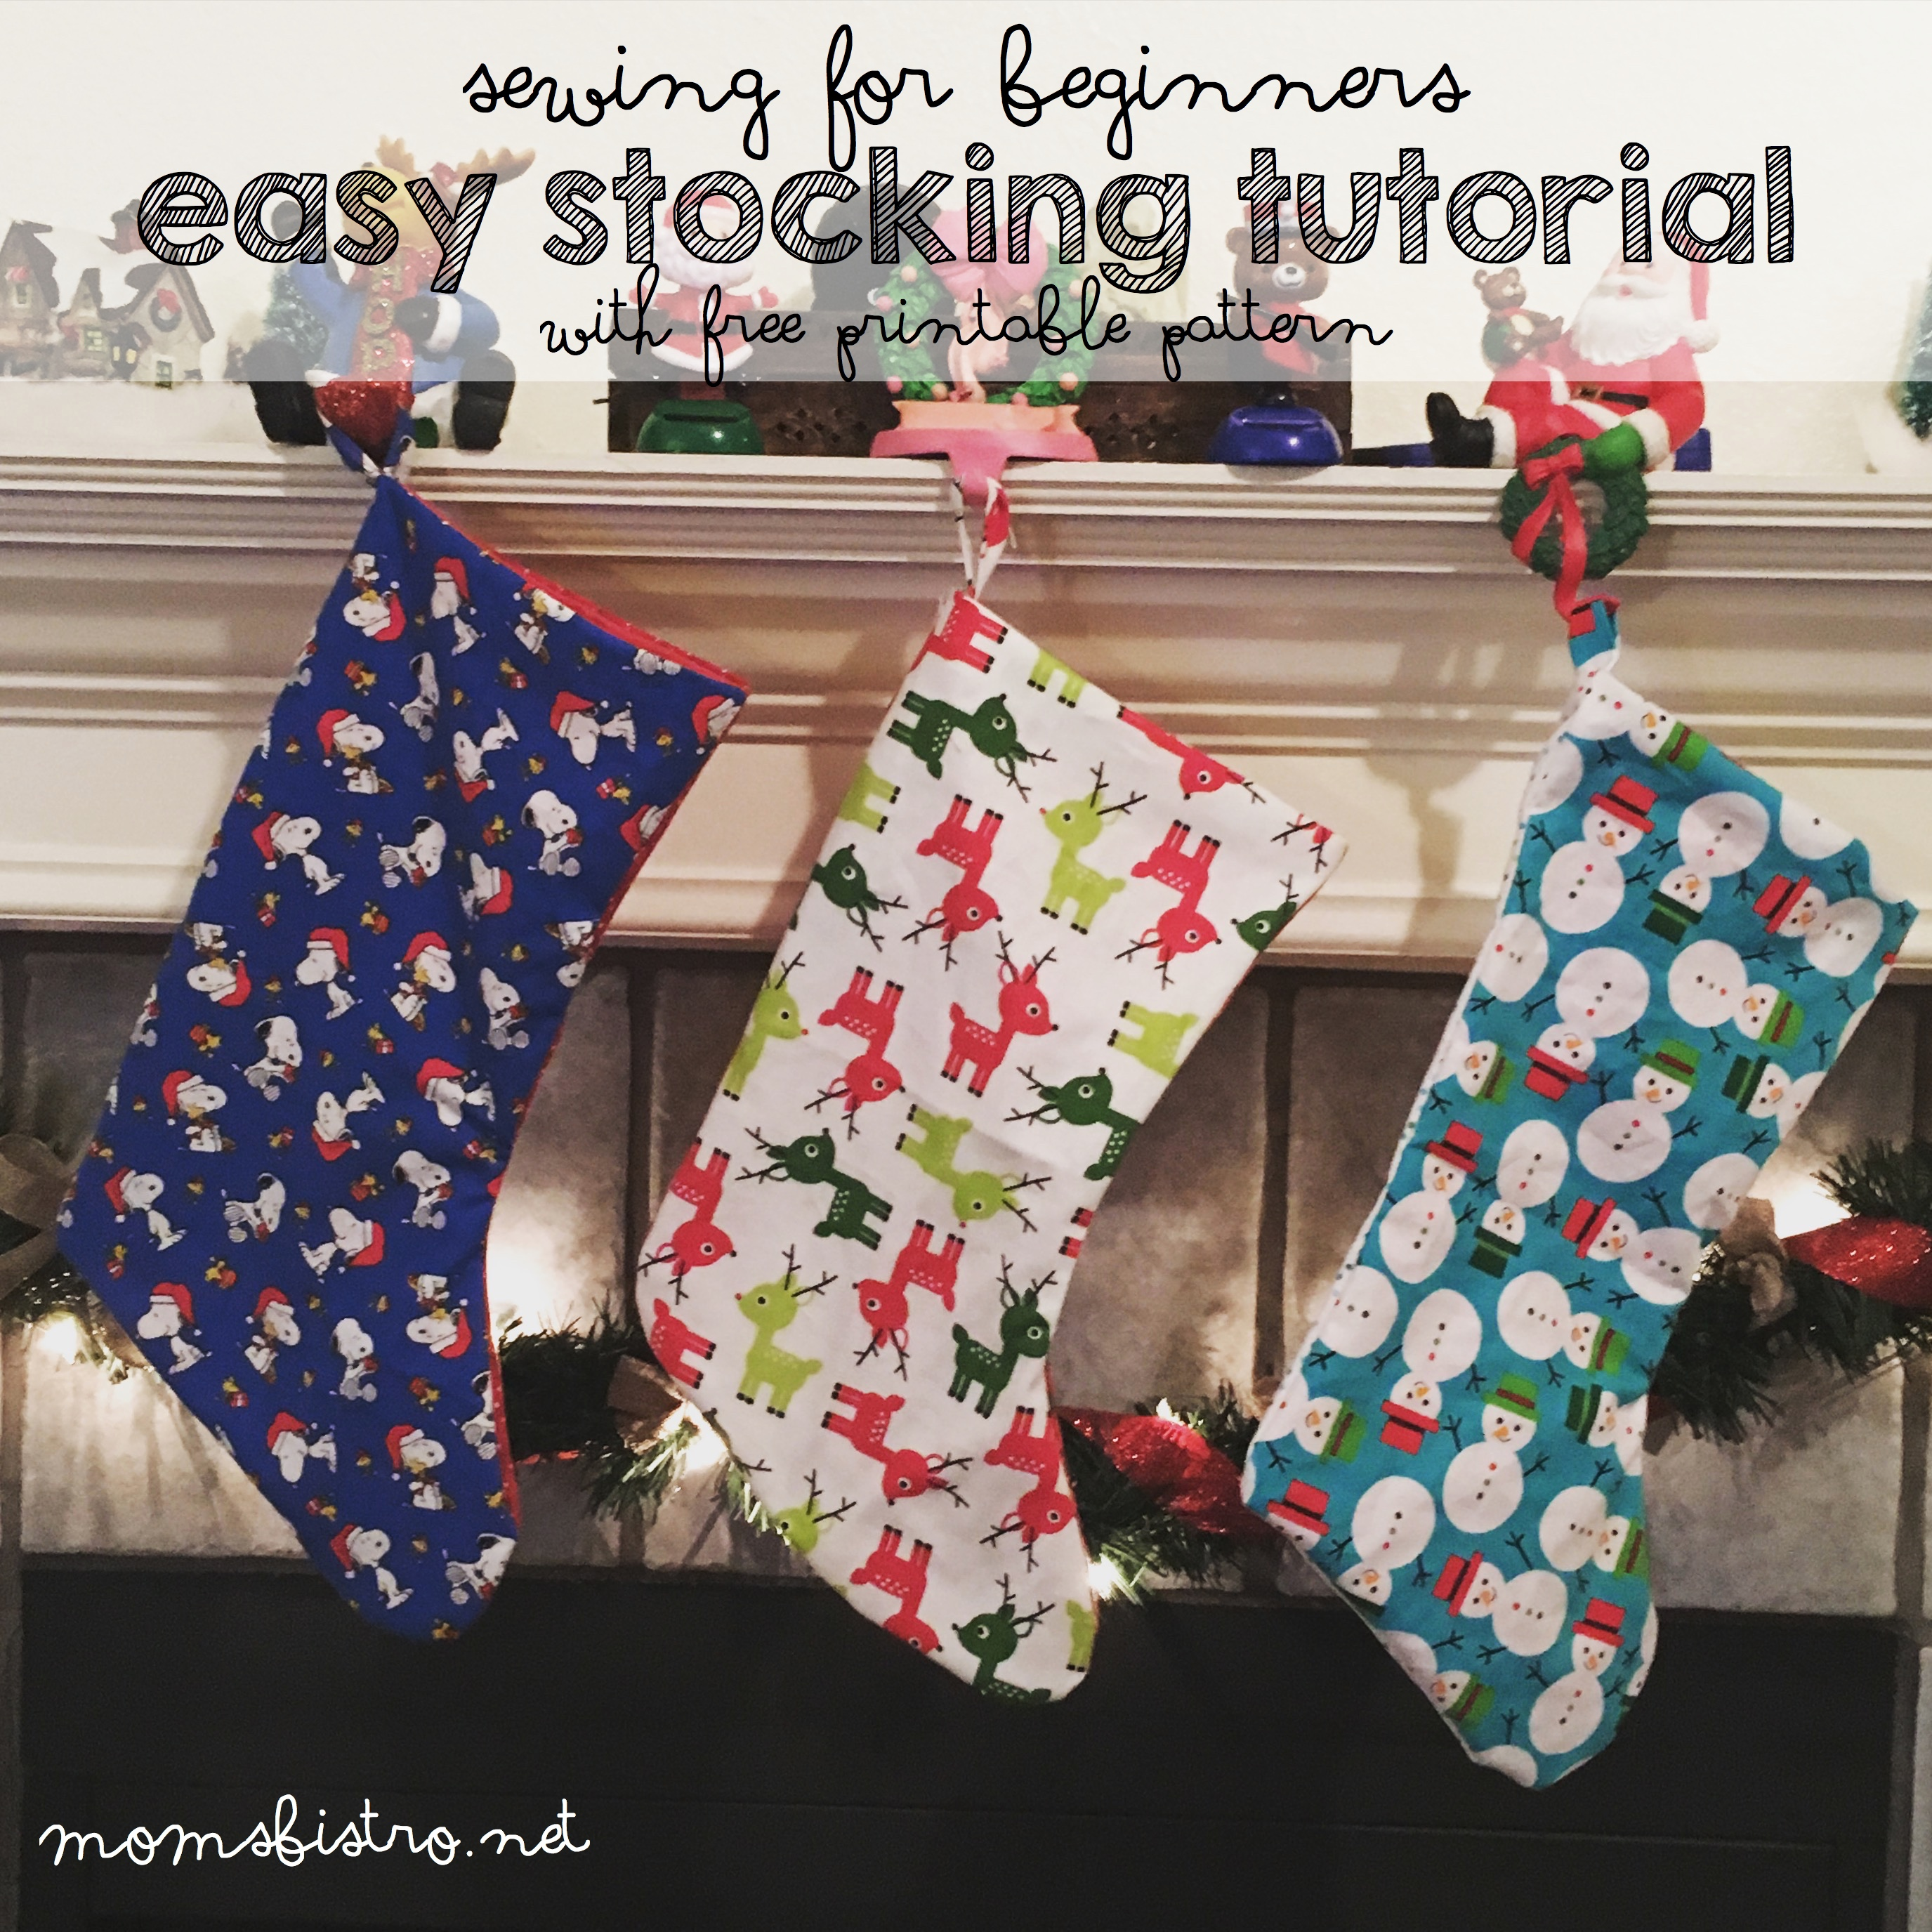 Homemade Holidays Are Always More Special!  Learn How To Make Your Own Christmas Stocking with This Easy Stocking Tutorial with FREE Printable Pattern